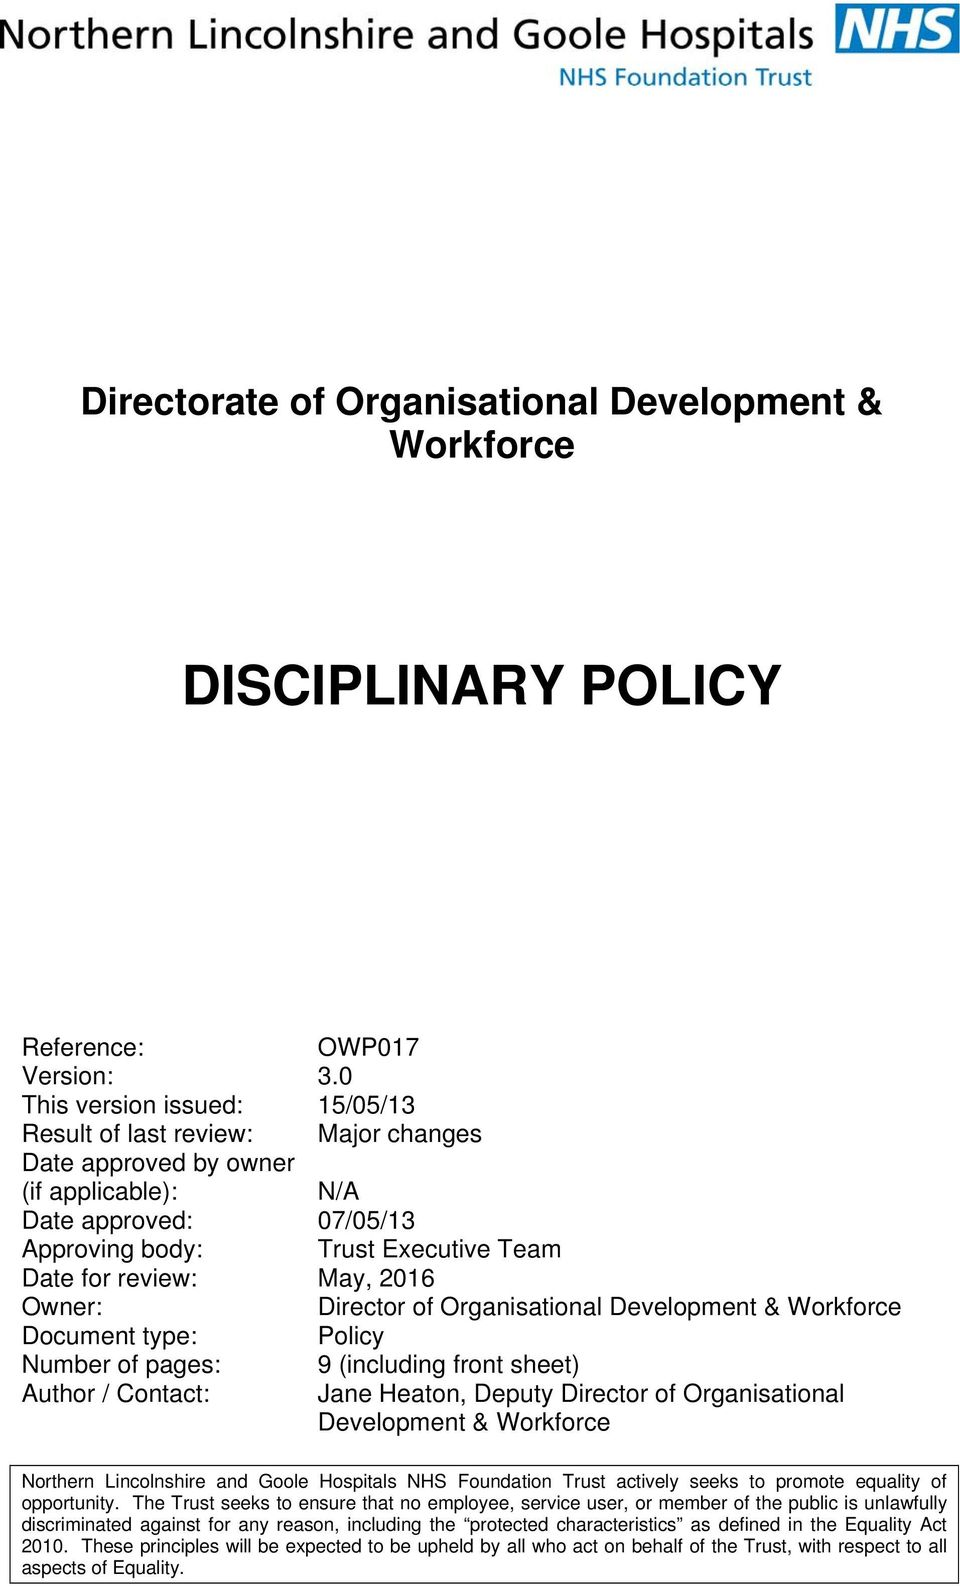 2016 Owner: Director of Organisational Development & Workforce Document type: Policy Number of pages: 9 (including front sheet) Author / Contact: Jane Heaton, Deputy Director of Organisational